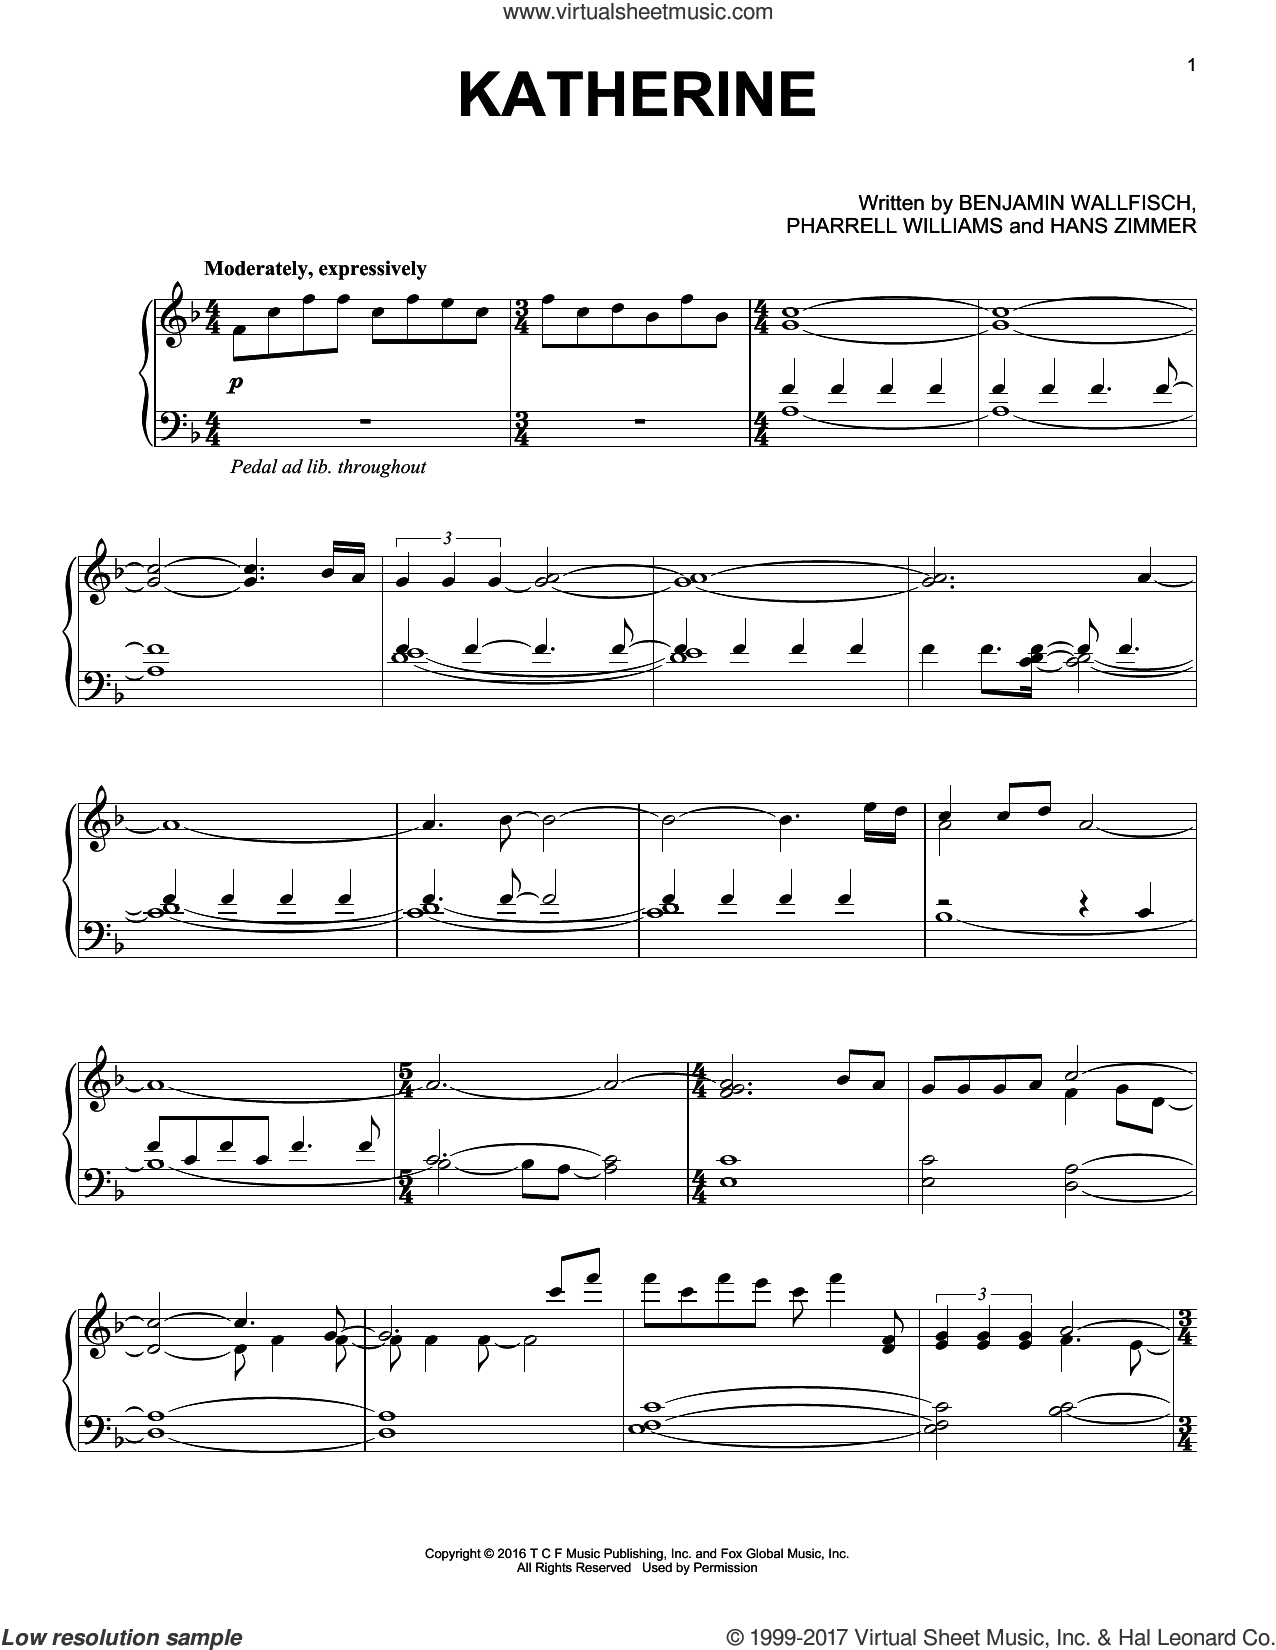 Katherine sheet music for voice, piano or guitar by Pharrell Williams and Hans Zimmer. Score Image Preview.